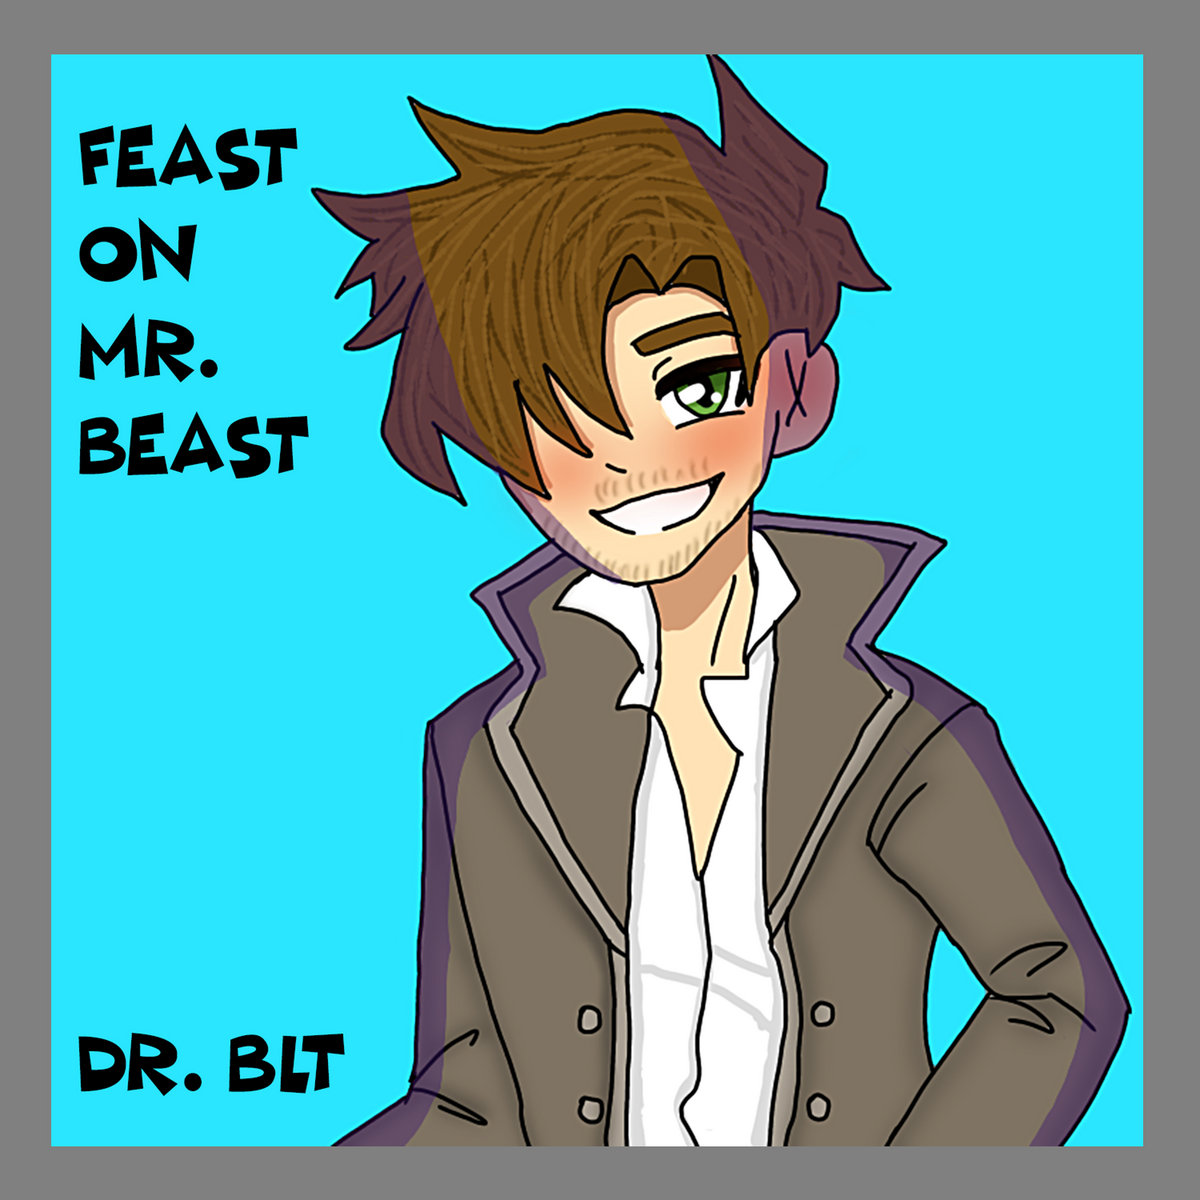 Feast on Mr. Beast (Extended Dance Mix) by Dr BLT